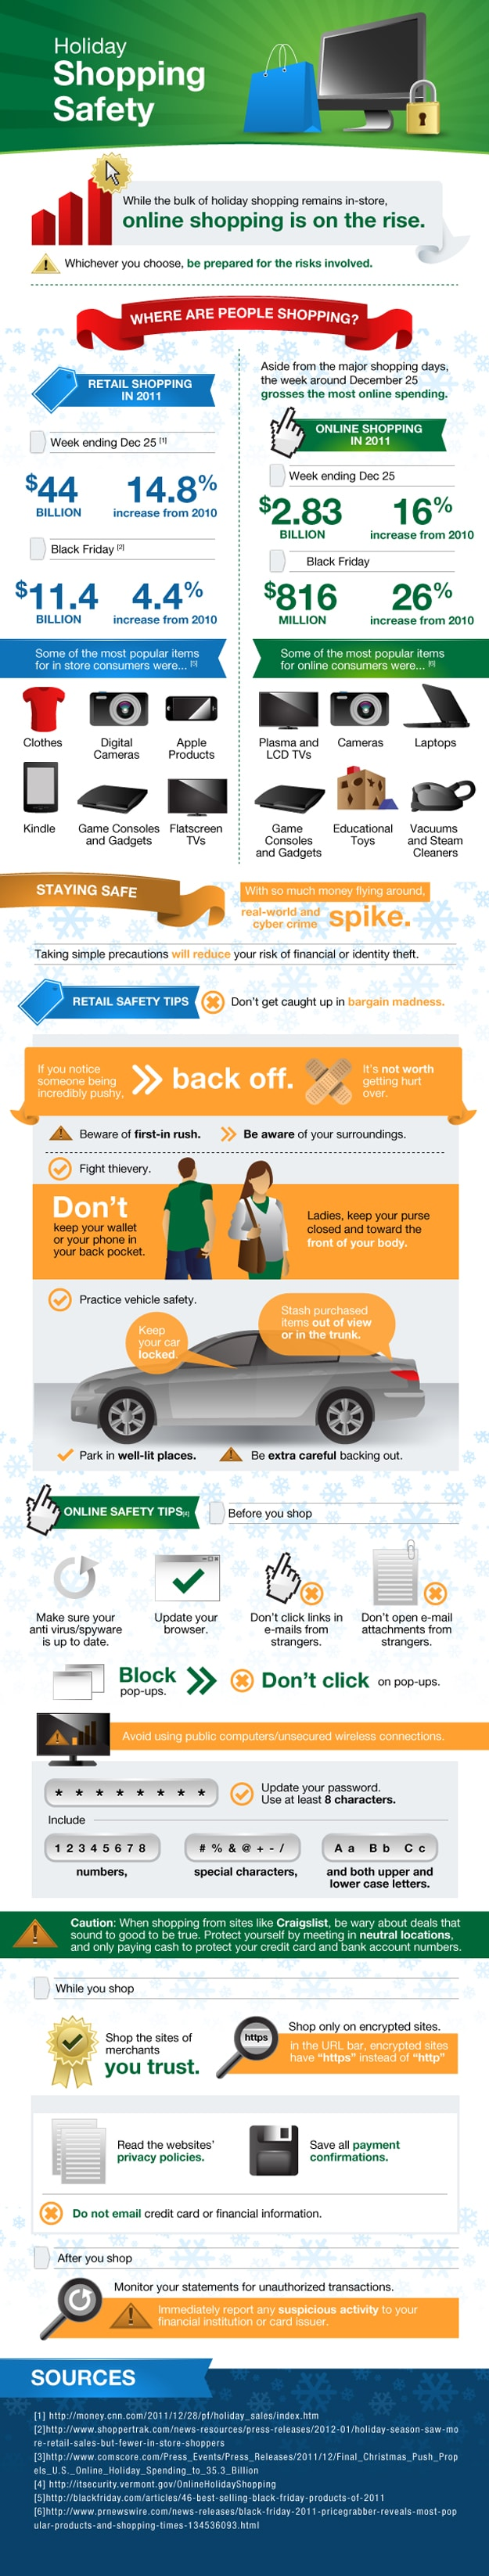 Shop Safely & Securely This Holiday Season [Infographic]